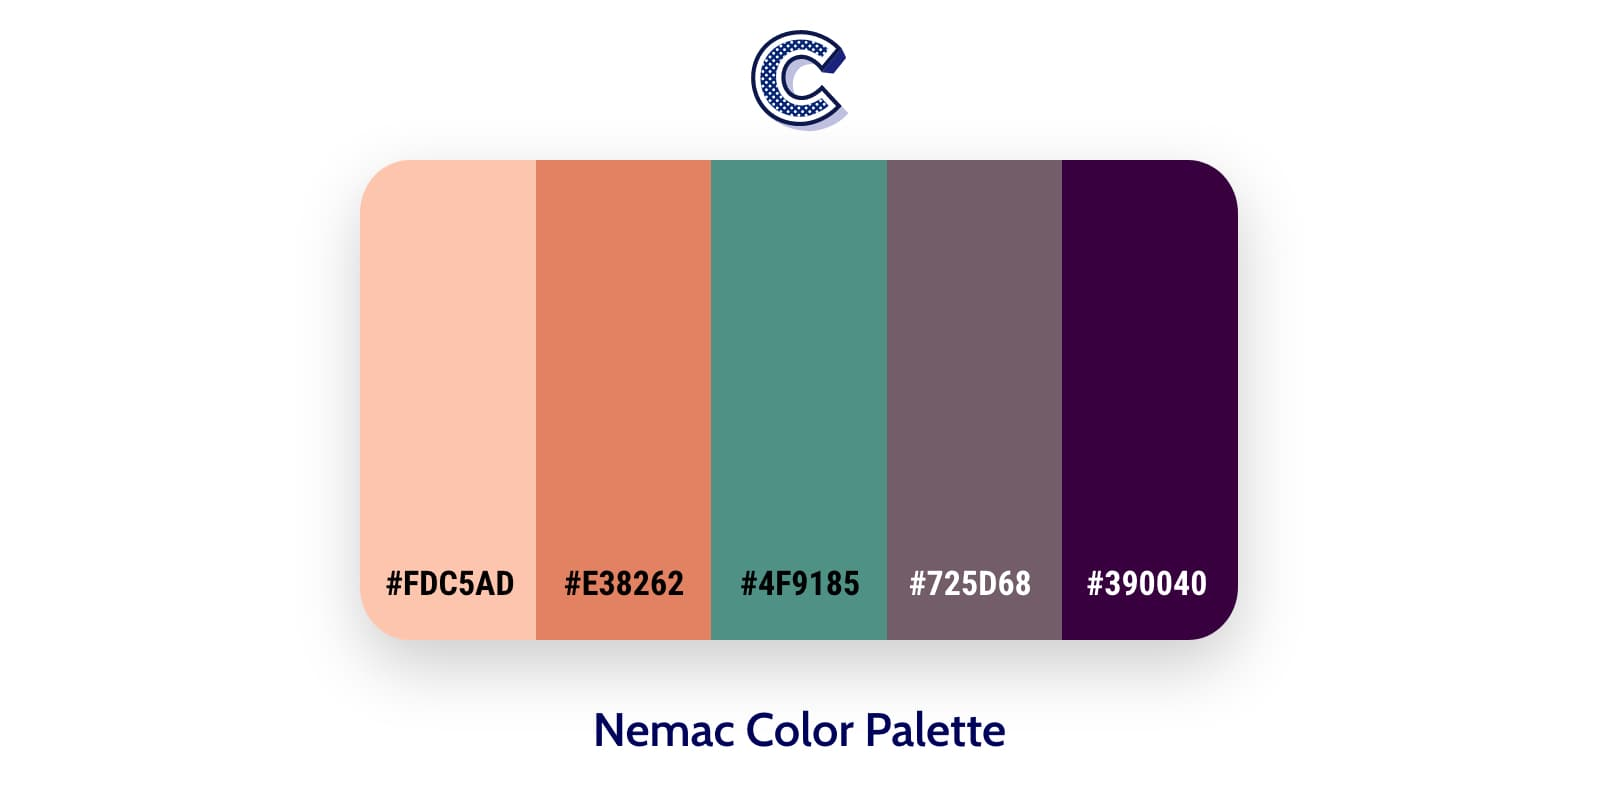 the featured image of nemac color palette